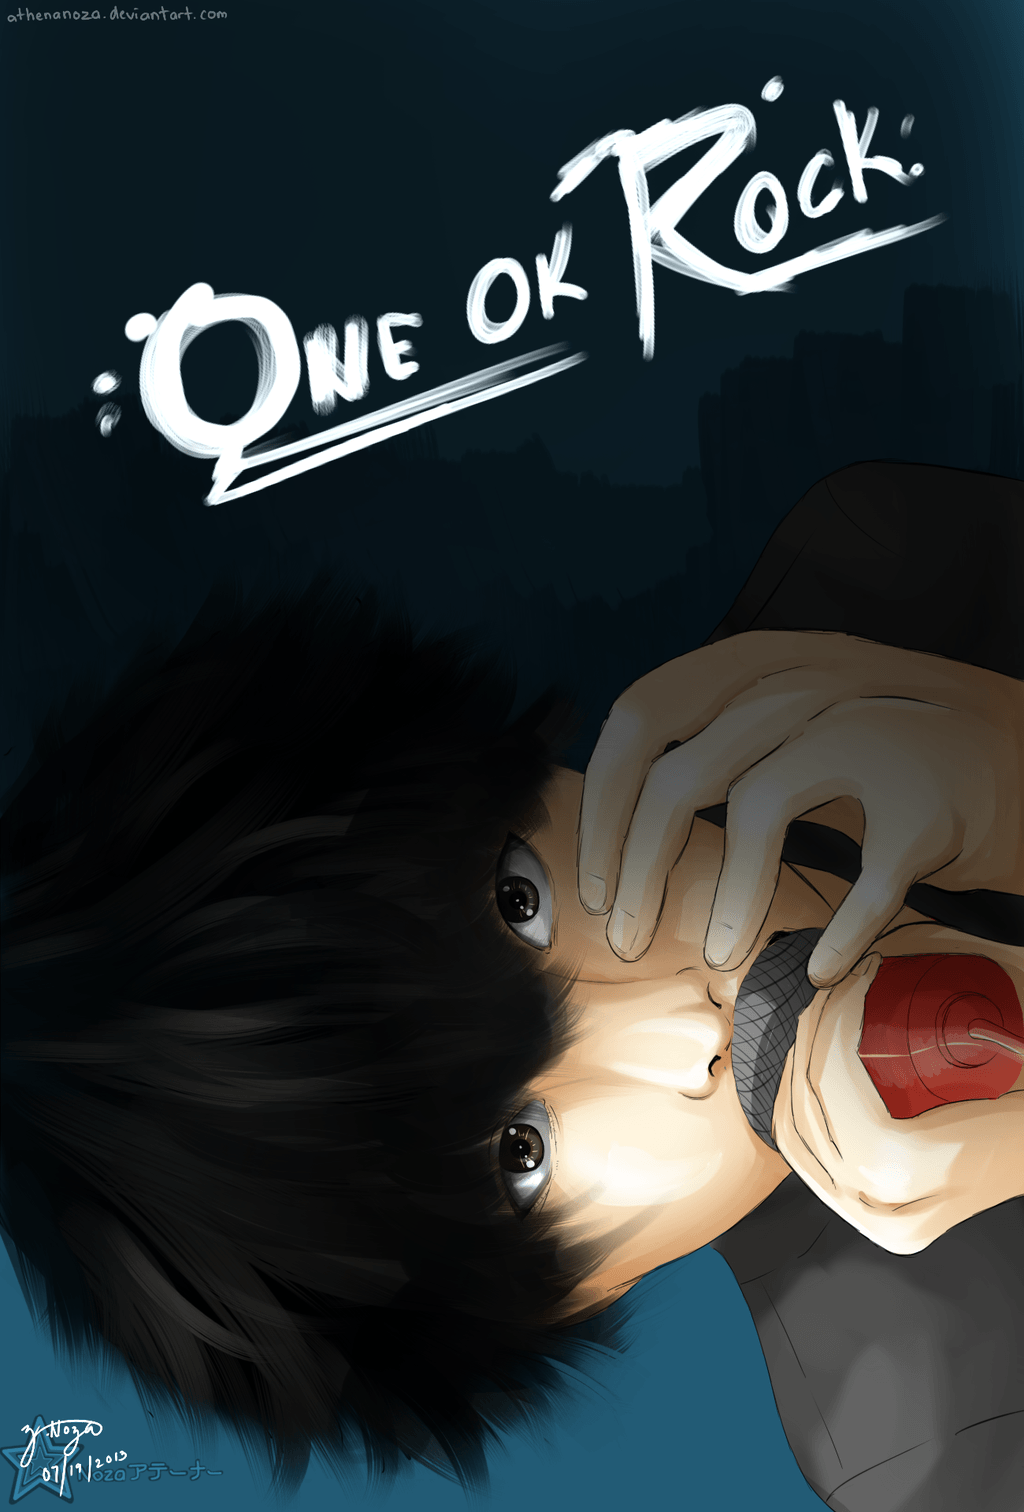 One Ok Rock:Taka by athenanoza on DeviantArt